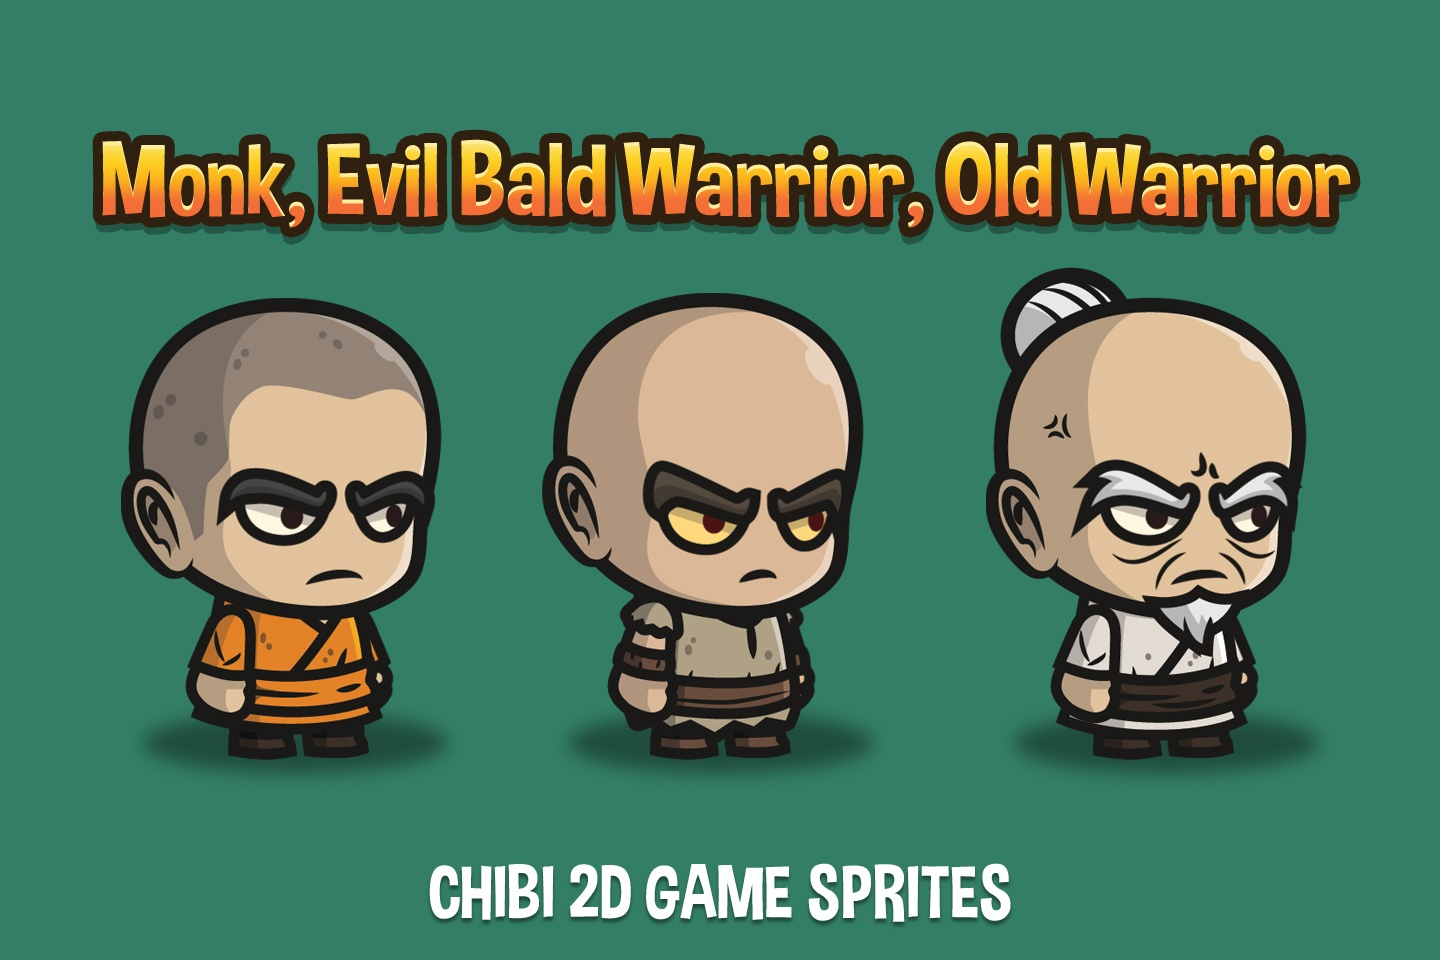 Monk, Evil Bald Warrior and Old Warrior Chibi 2D Sprites